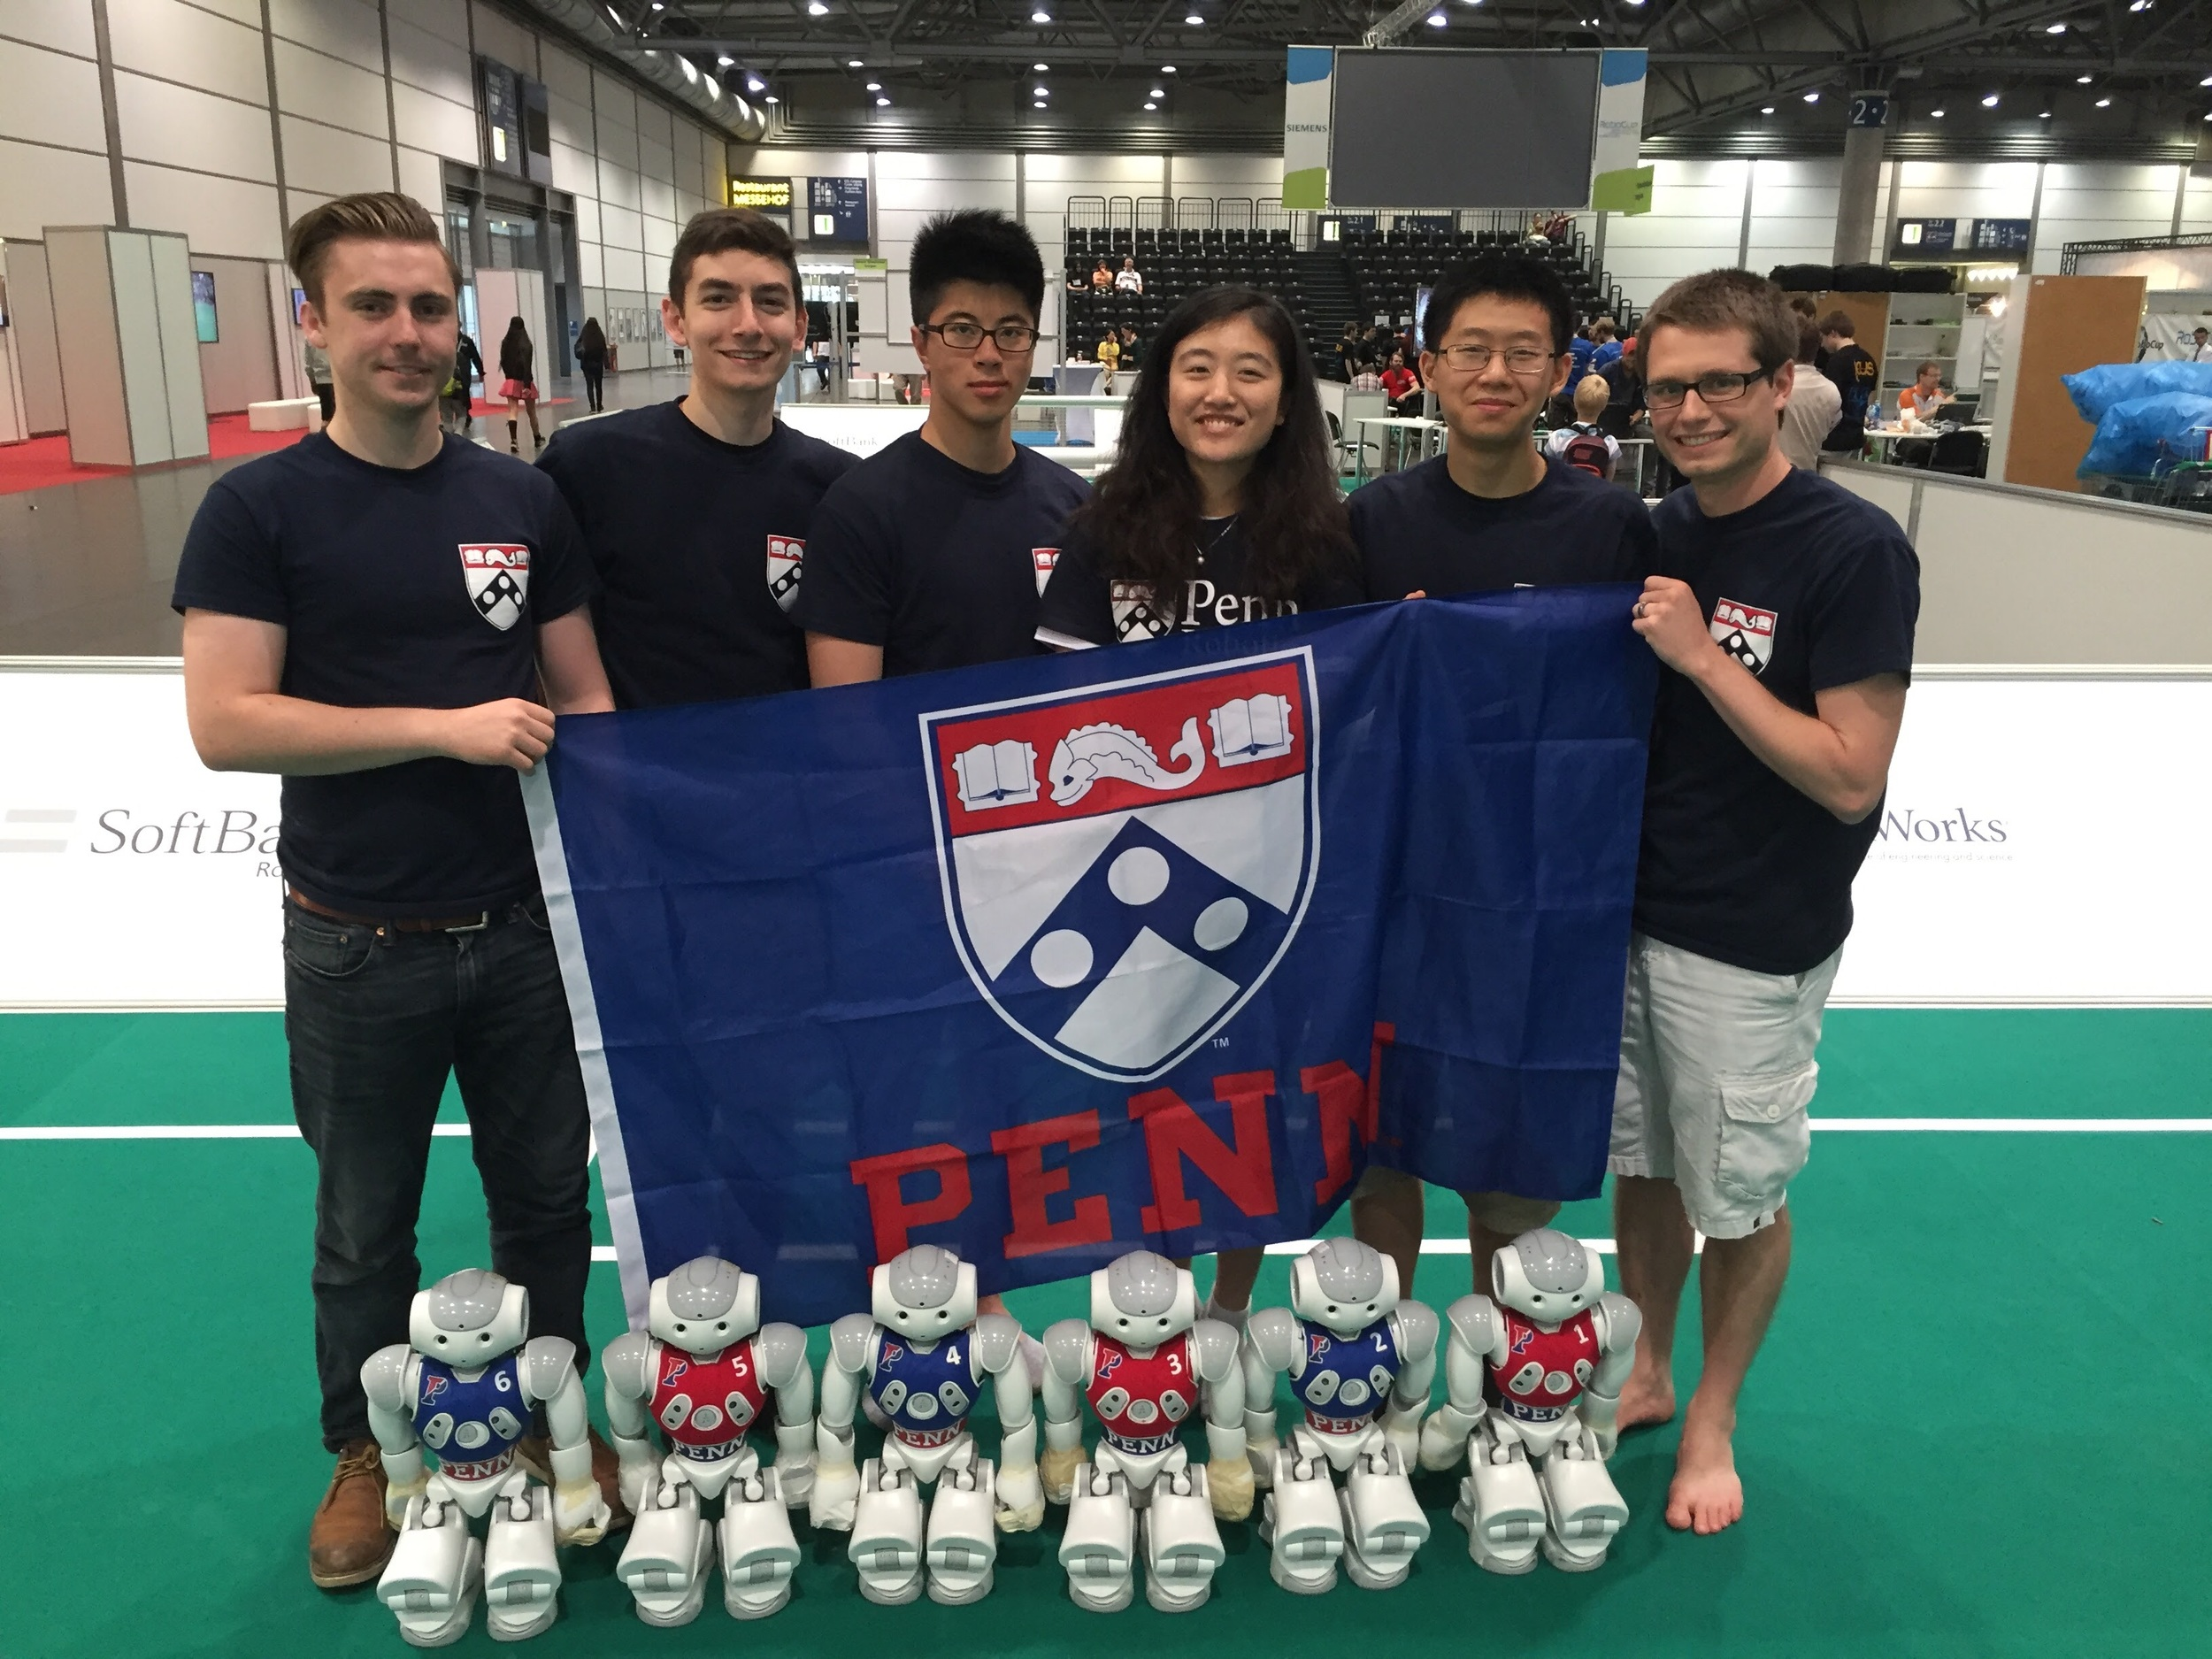 Our team: humans and robots